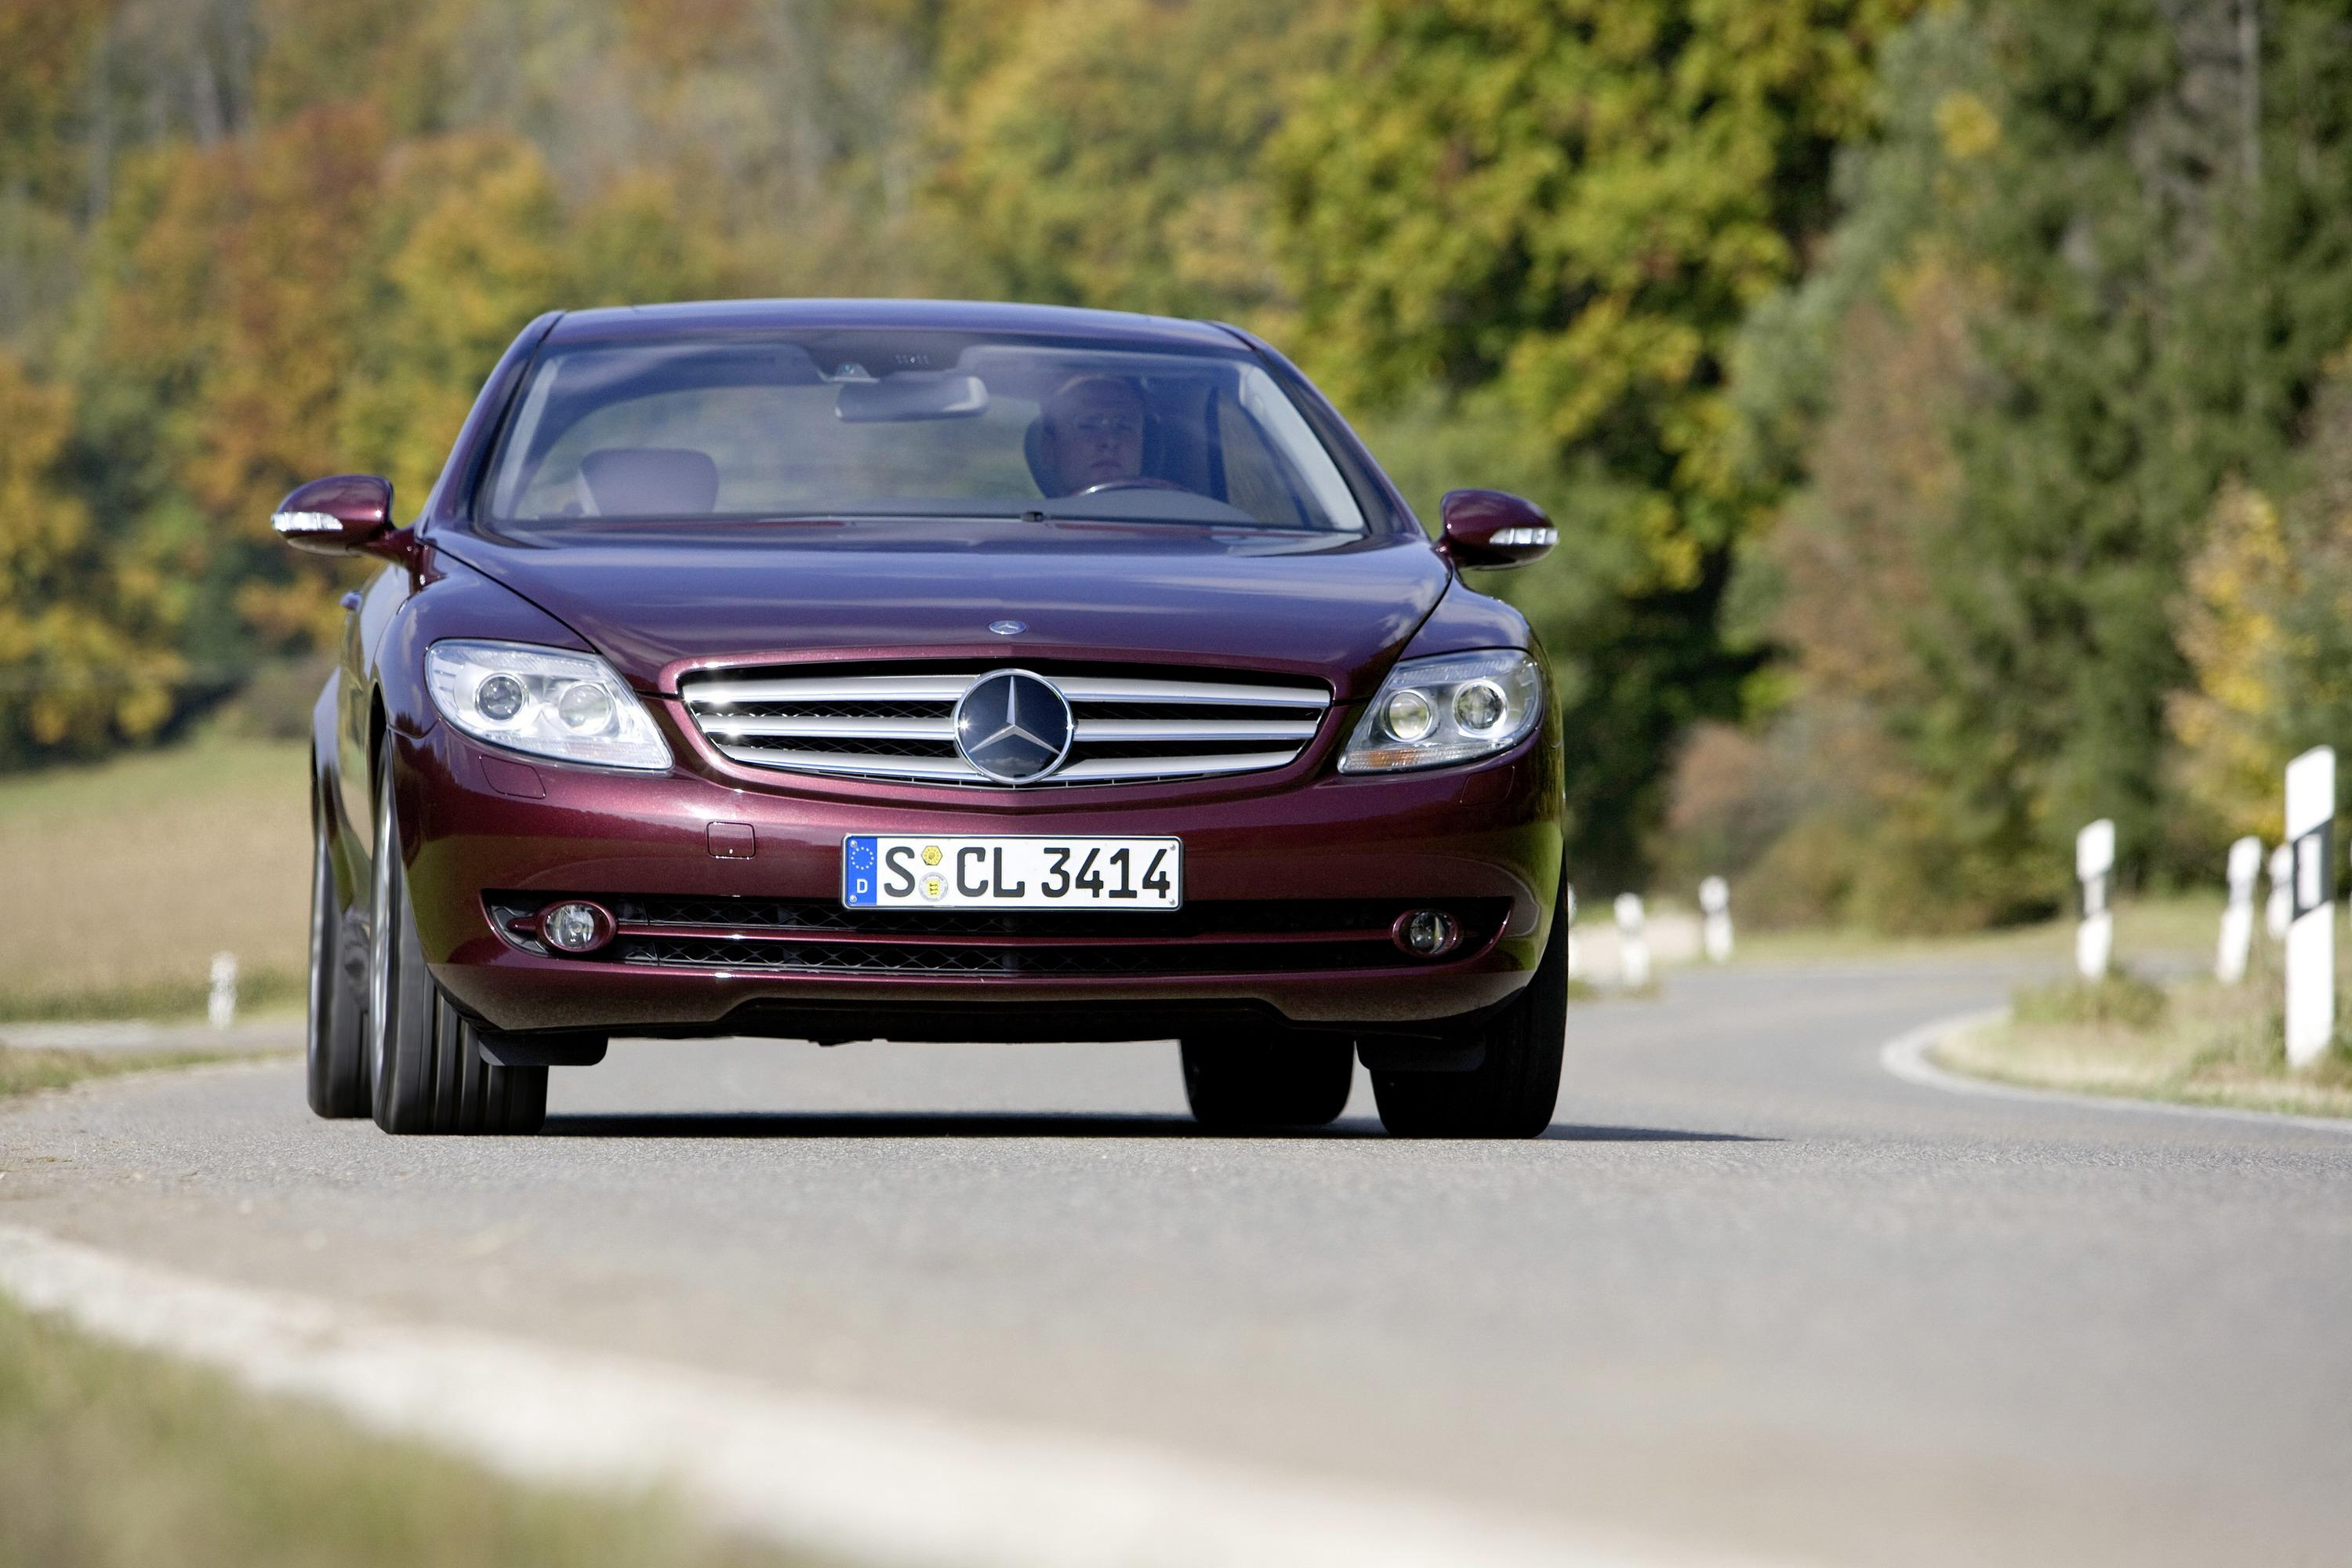 Superbe 2008 Mercedes CL500 4MATIC Review   Top Speed. »